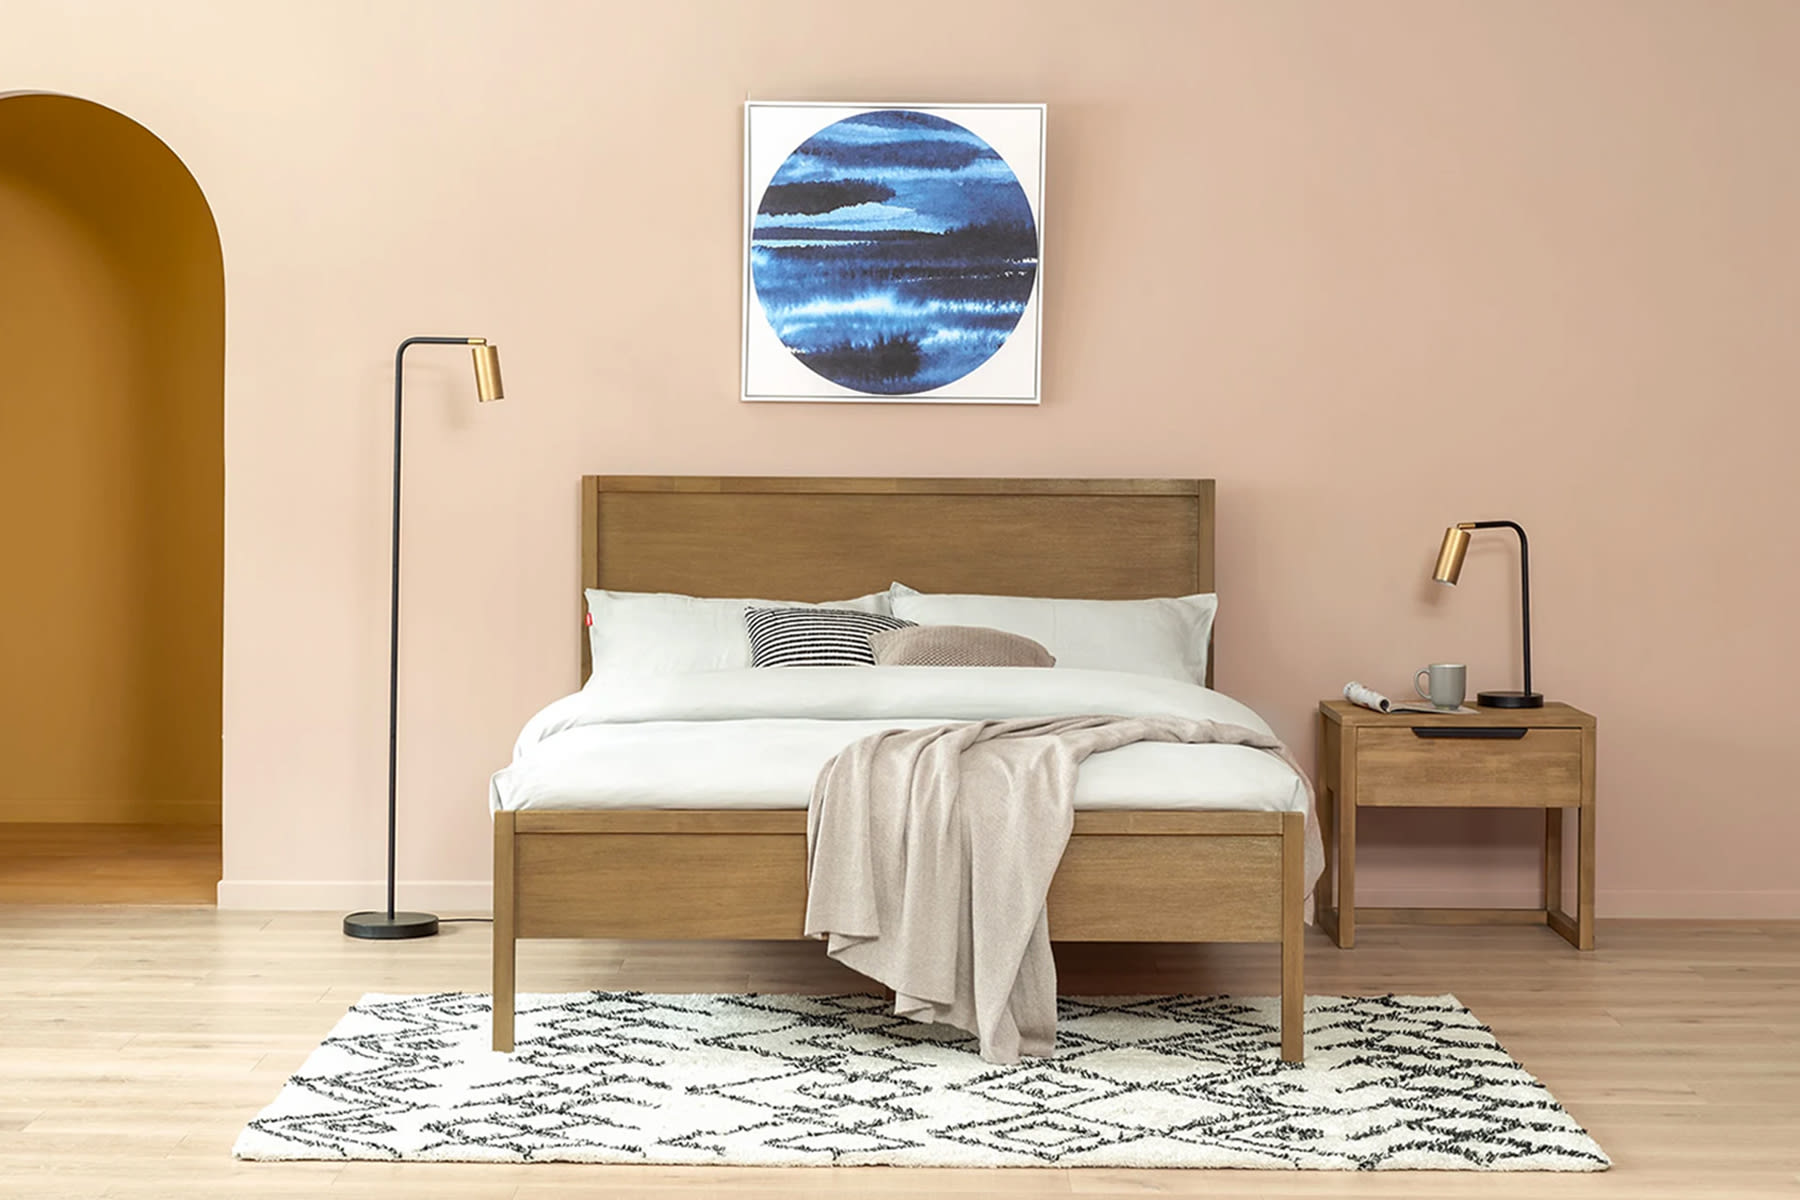 wooden bed frame, hanging wall art and bedside tables in pastel bedroom